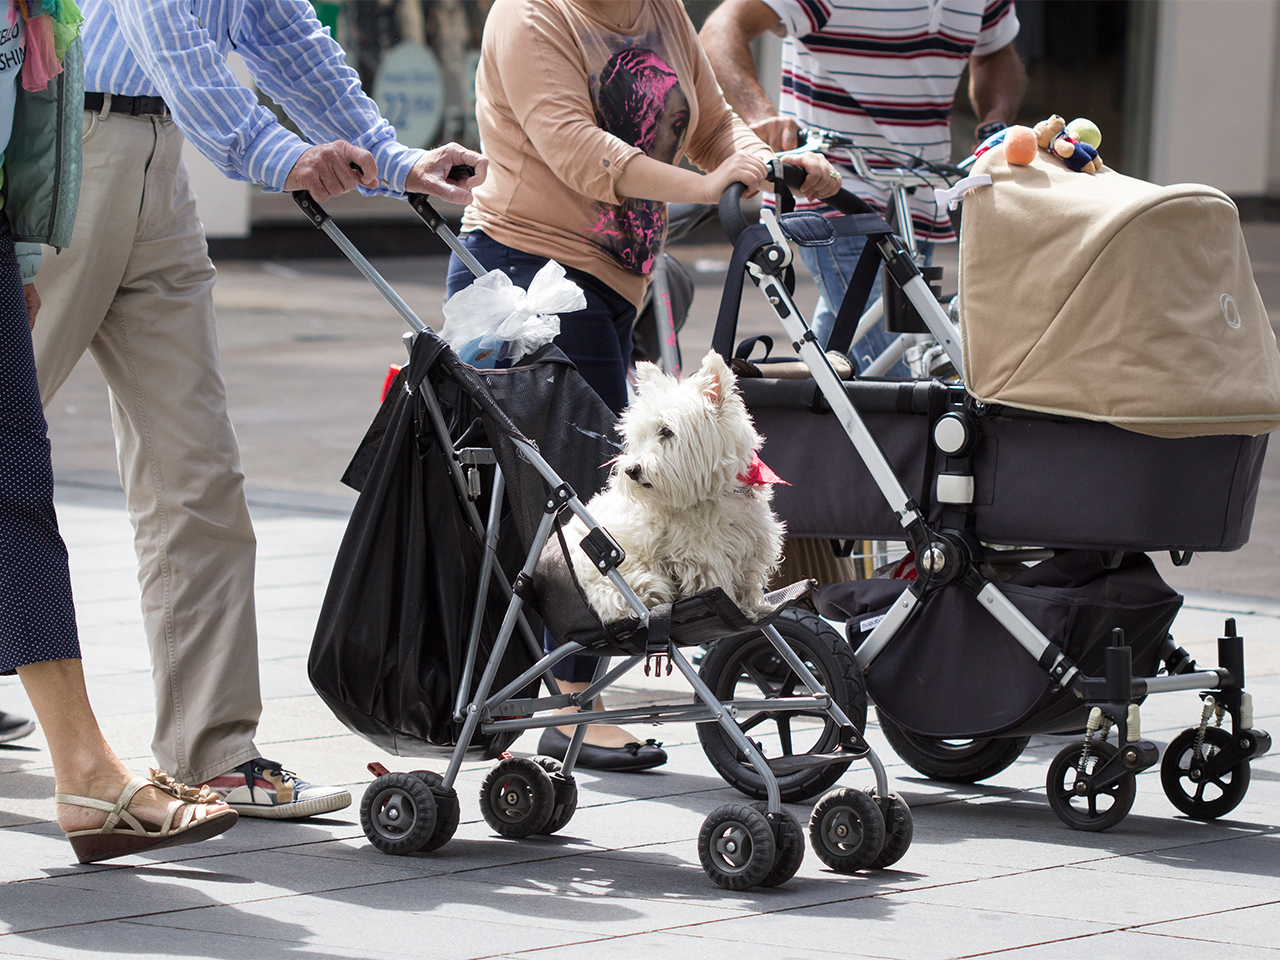 Peoplepush strollers down the street, one has a dog in it